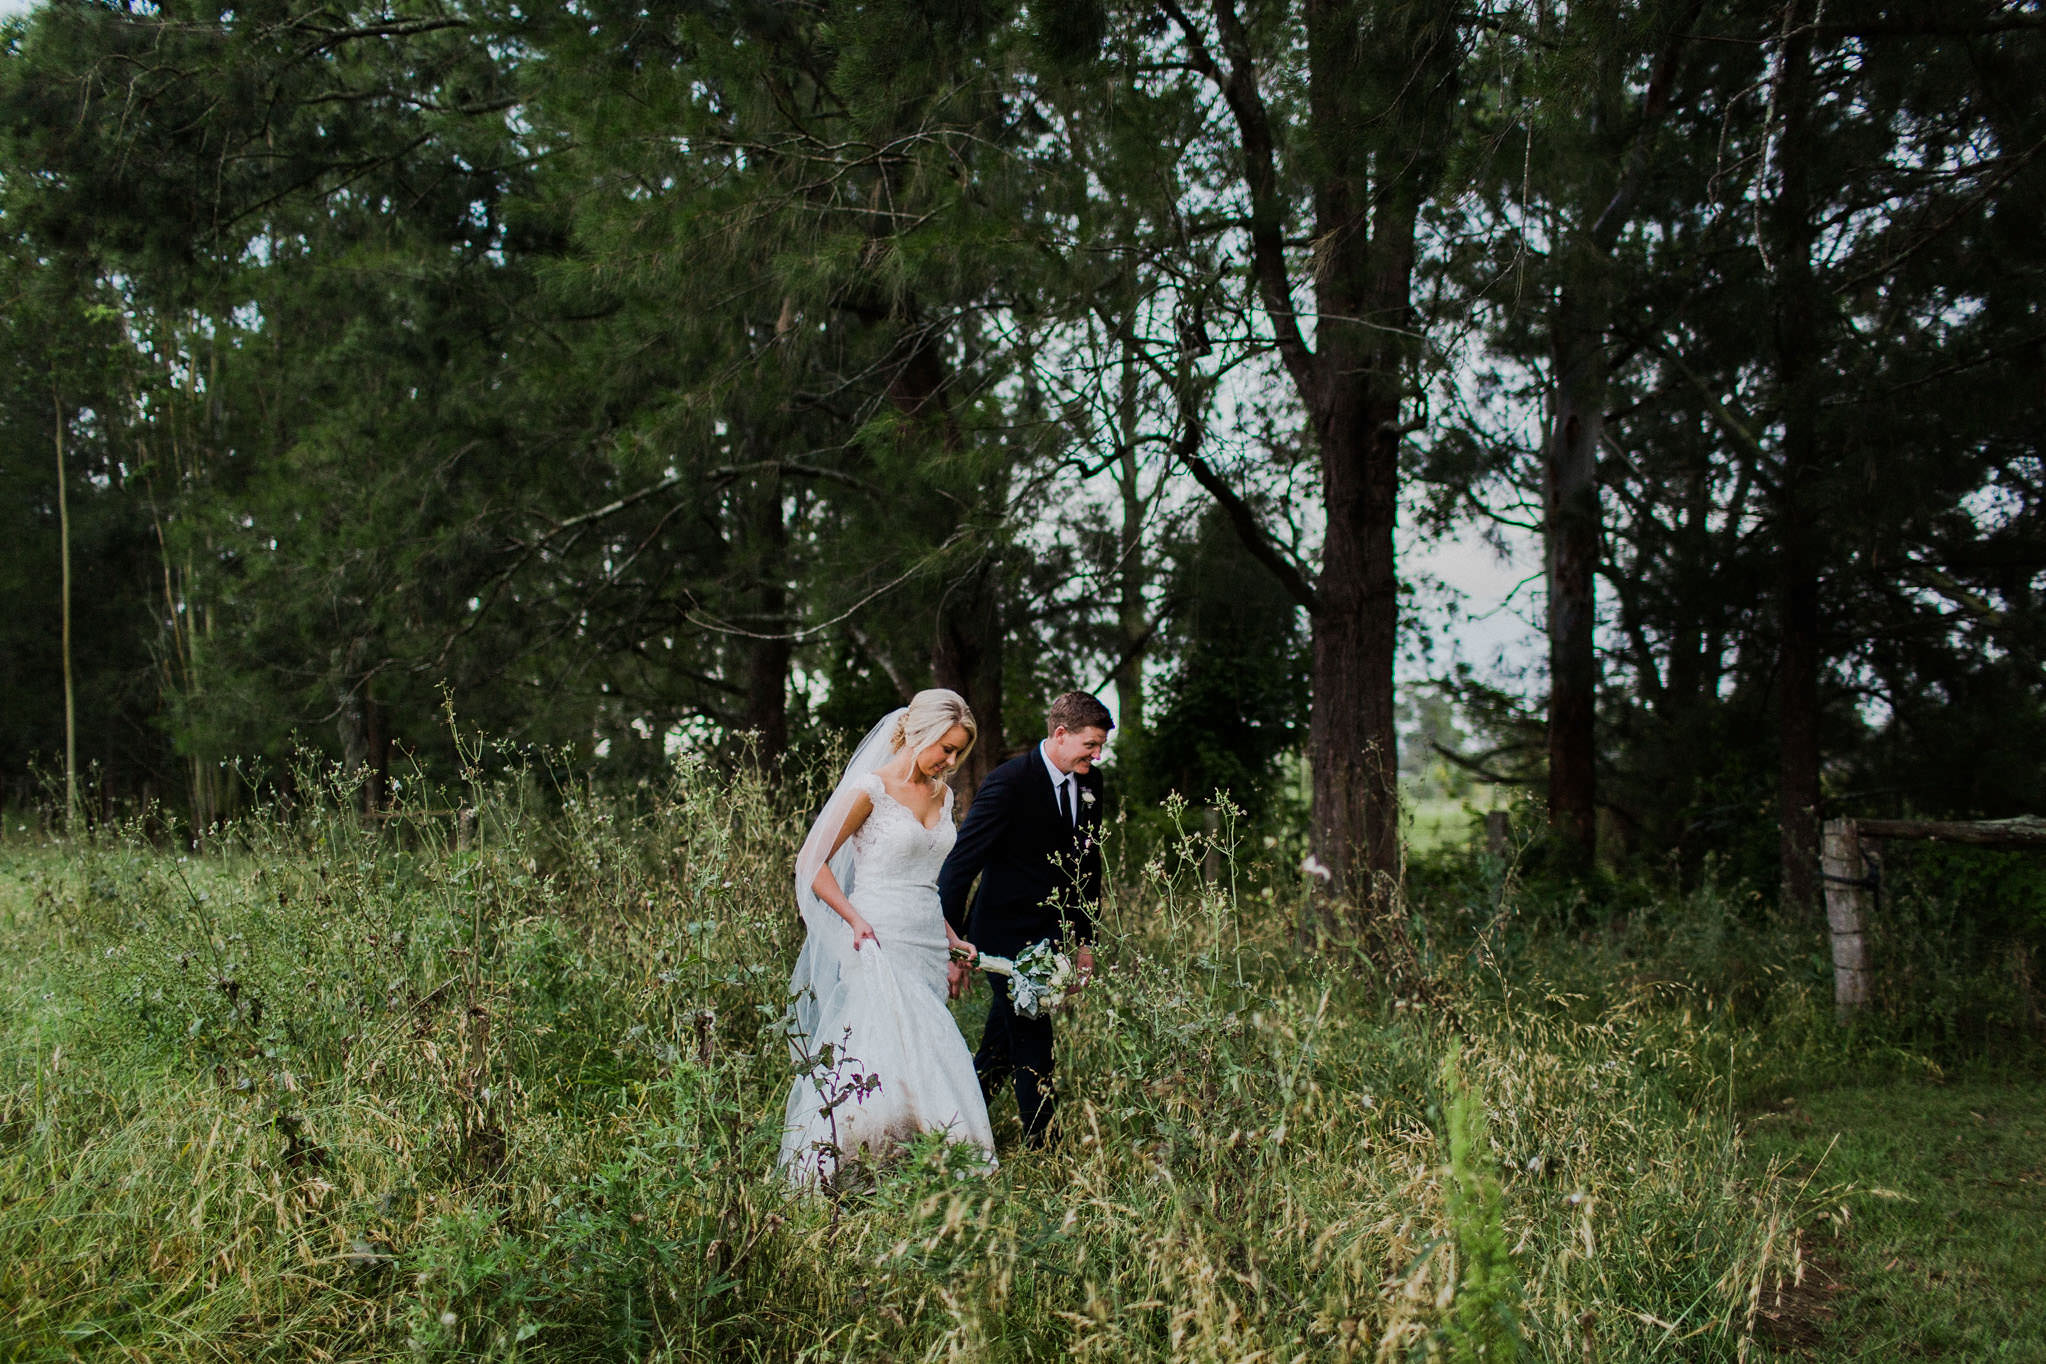 Wedding_Photographer_Newcastle_JoMatt-1127.jpg